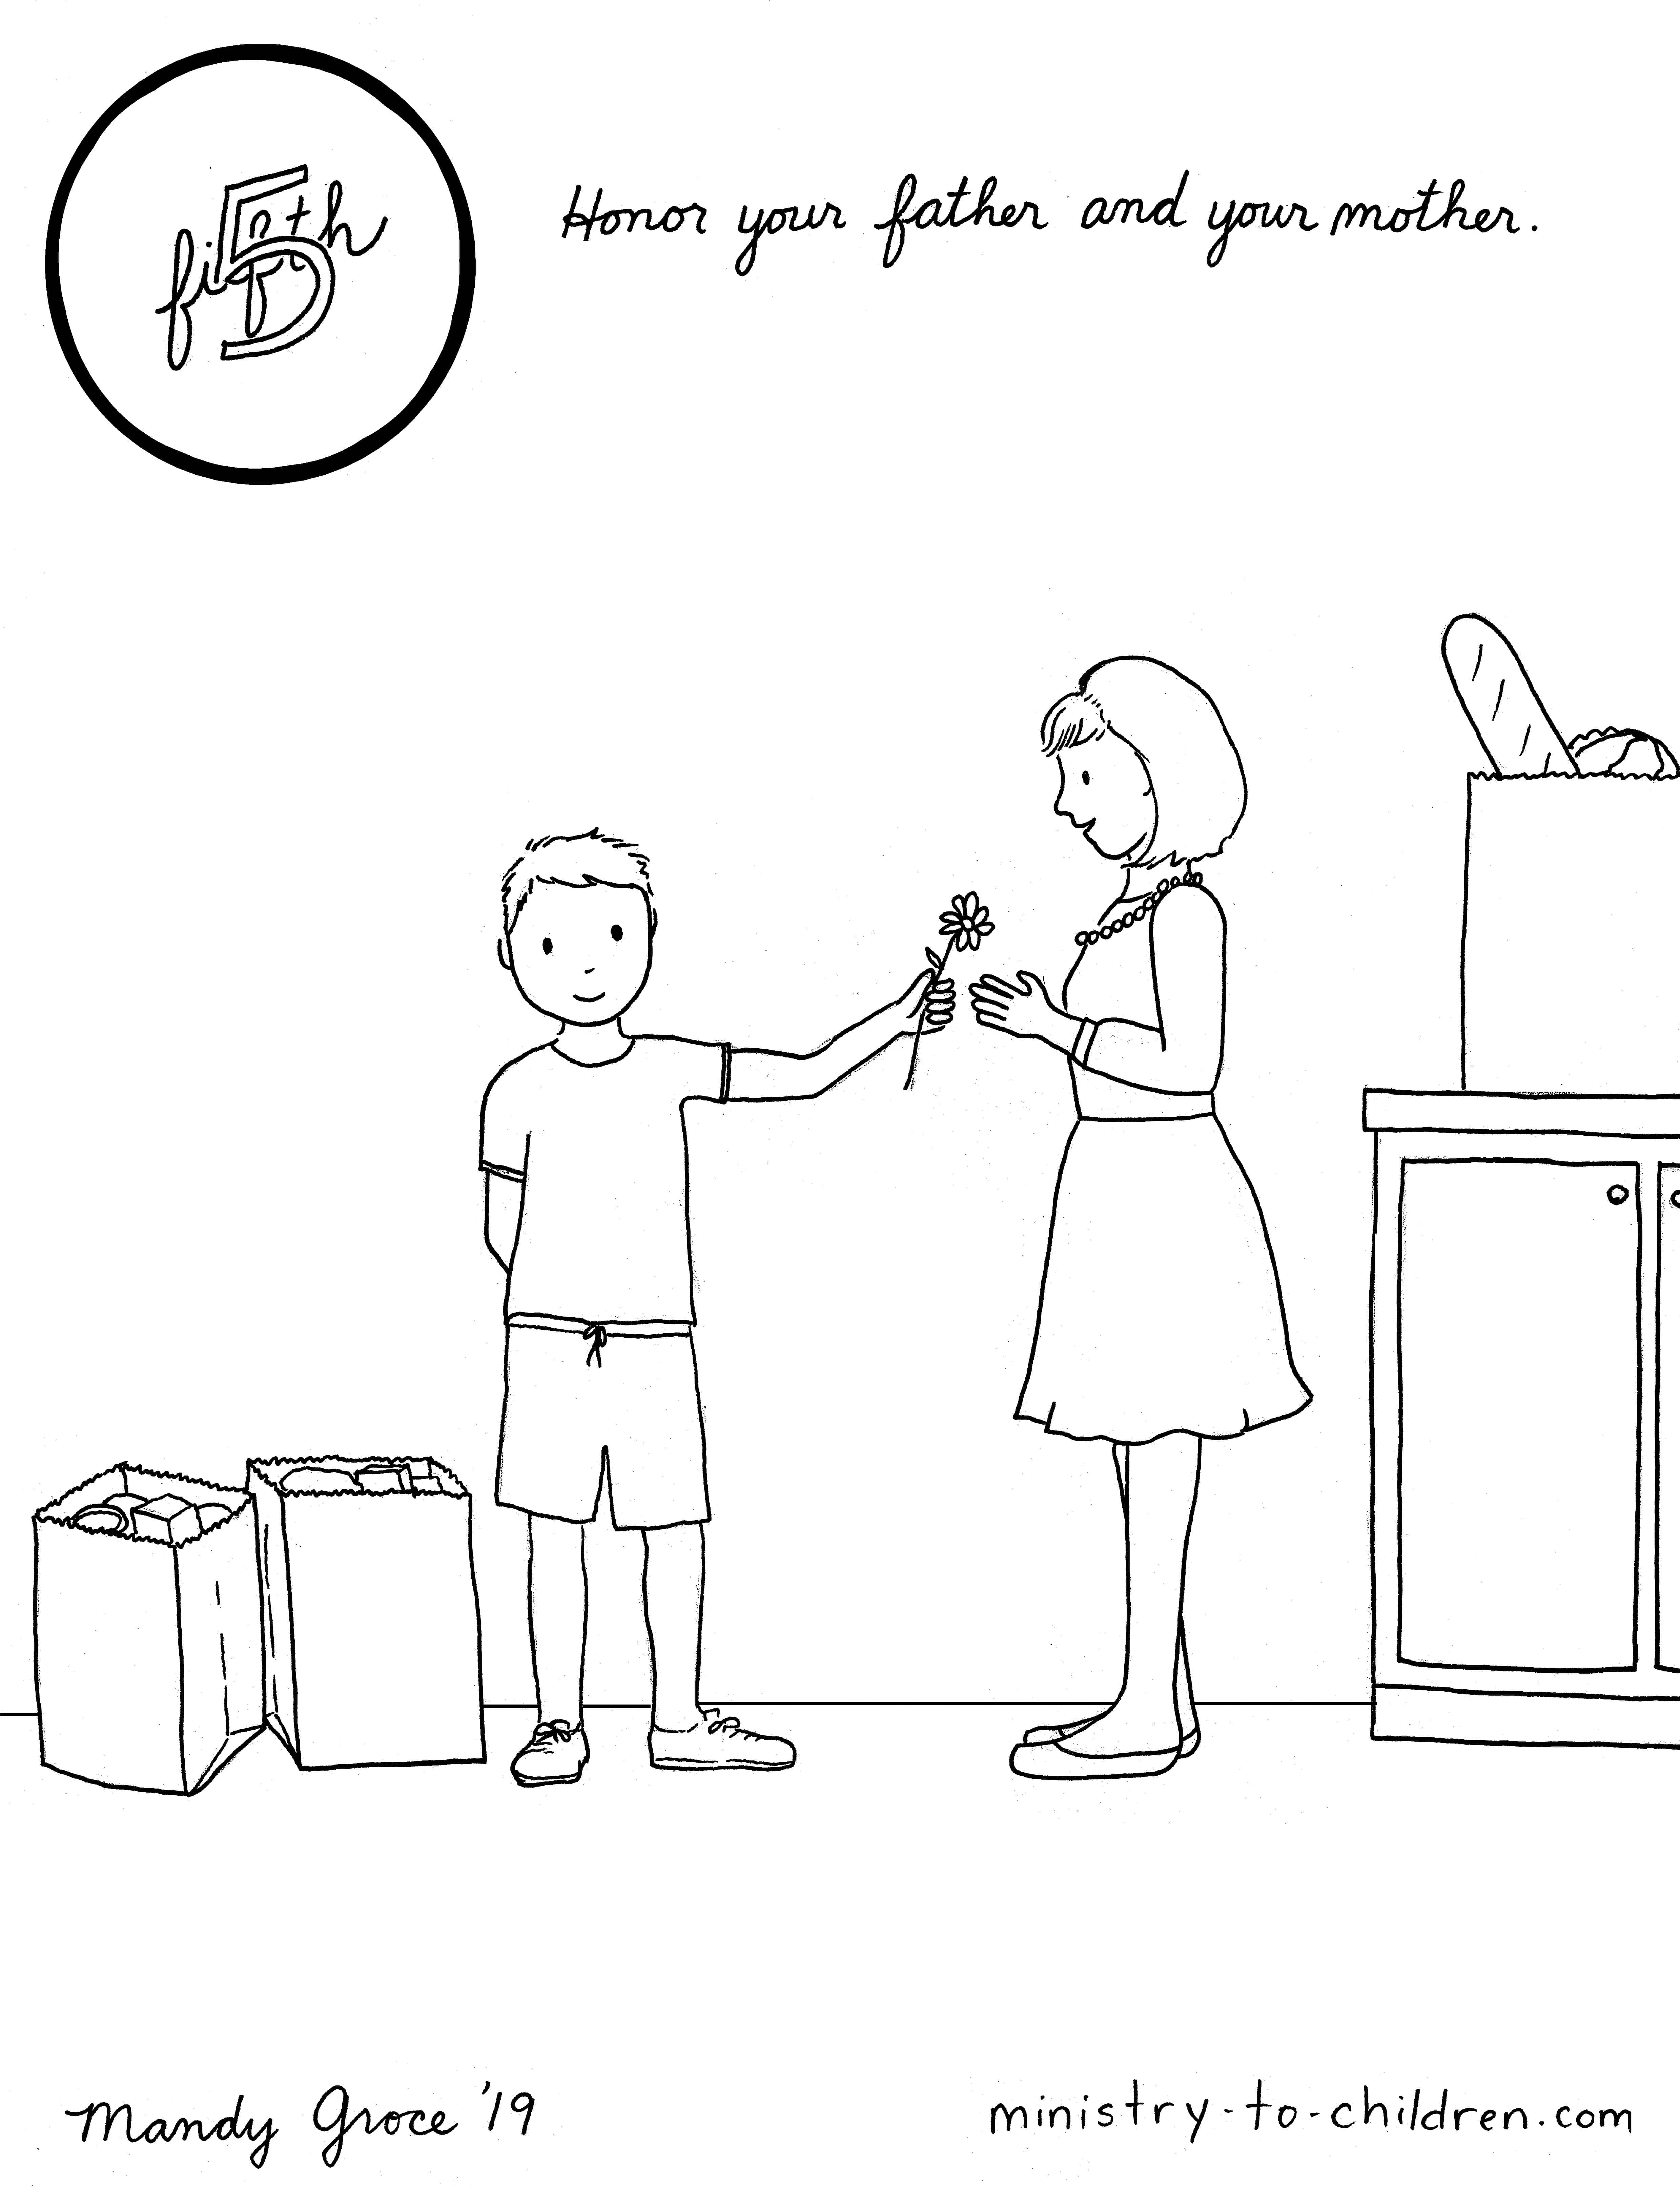 5 Mother S Day Coloring Pages Easy Print Ministry To